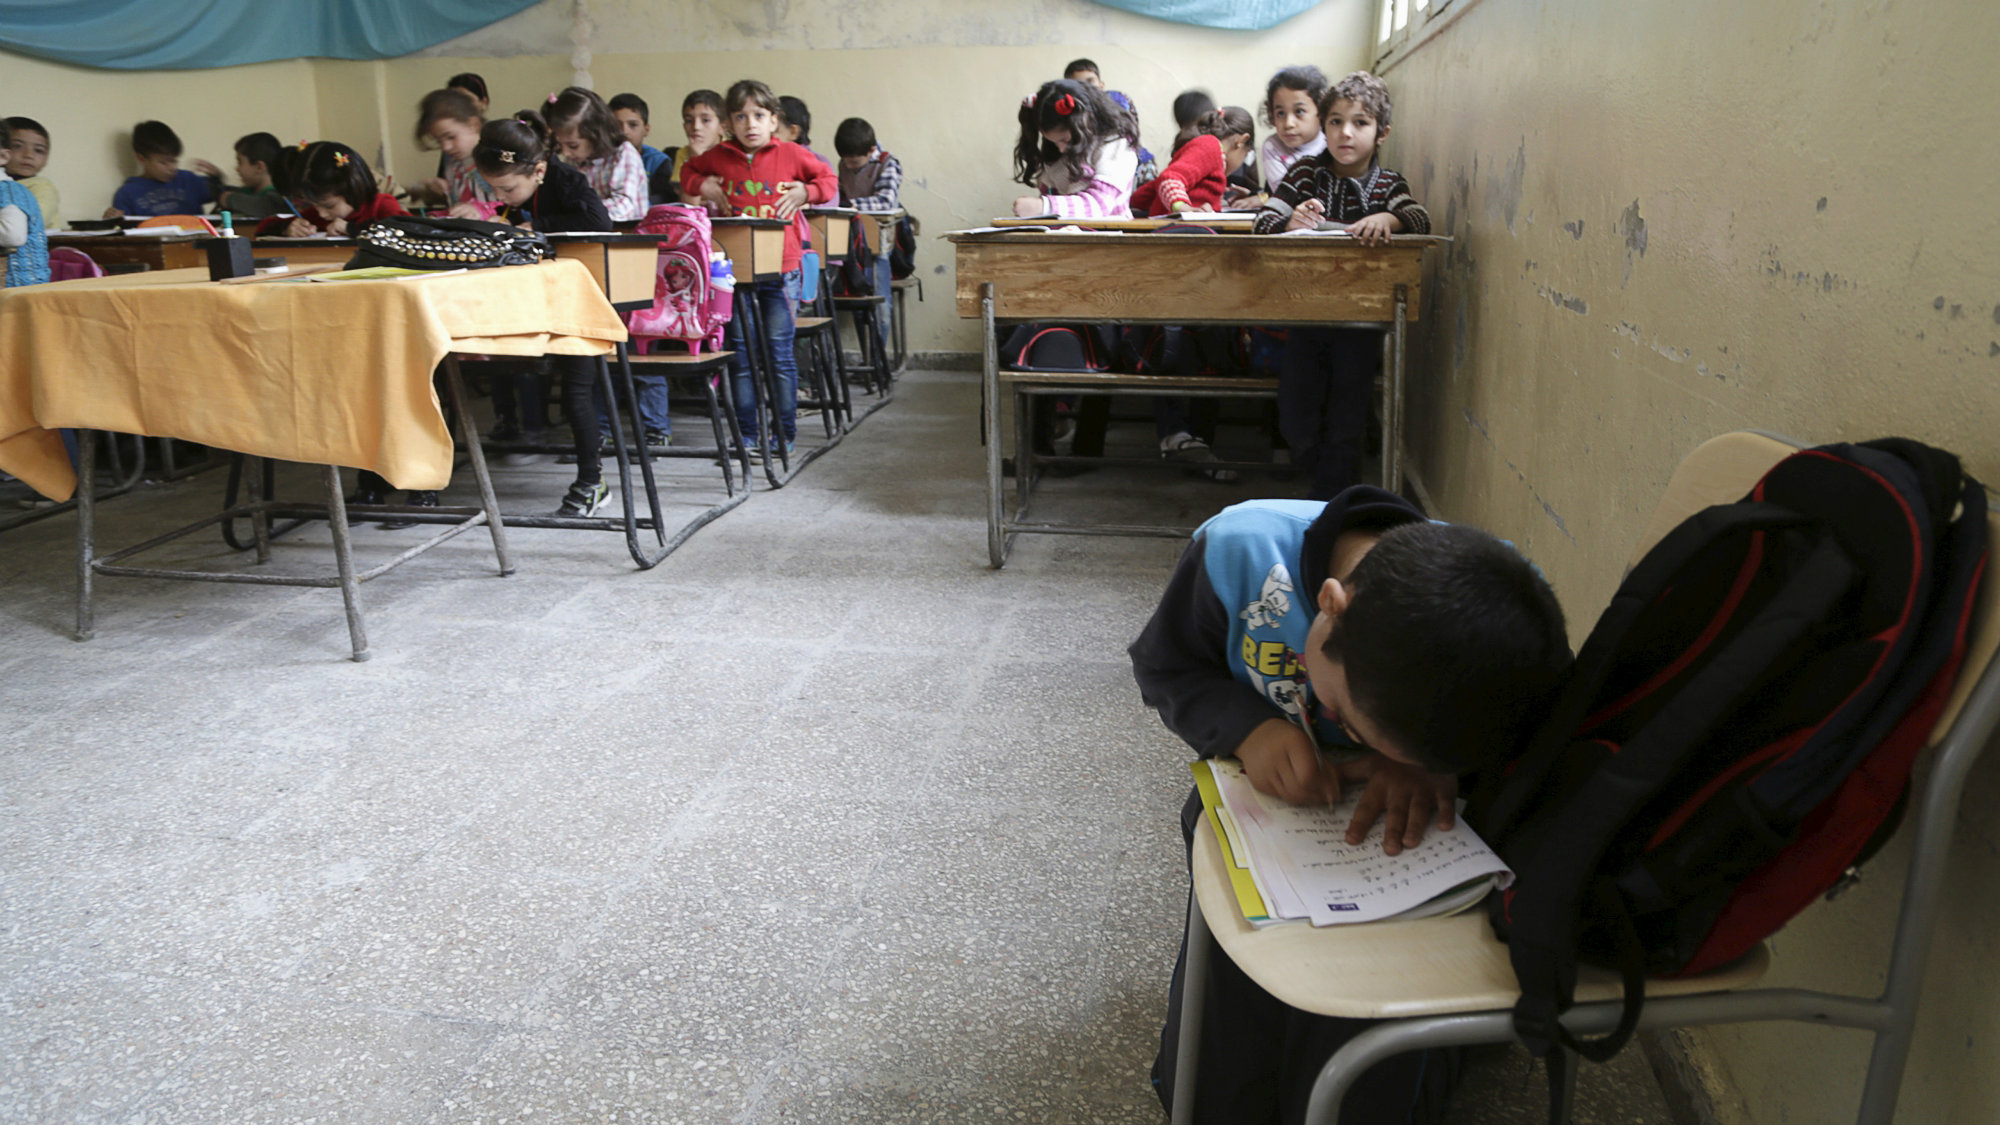 A student uses a seat as a desk in an overcrowded class inside Hosam Kamel school in the rebel-controlled area of Maaret al-Numan town in Idlib province, Syria October 28, 2015.